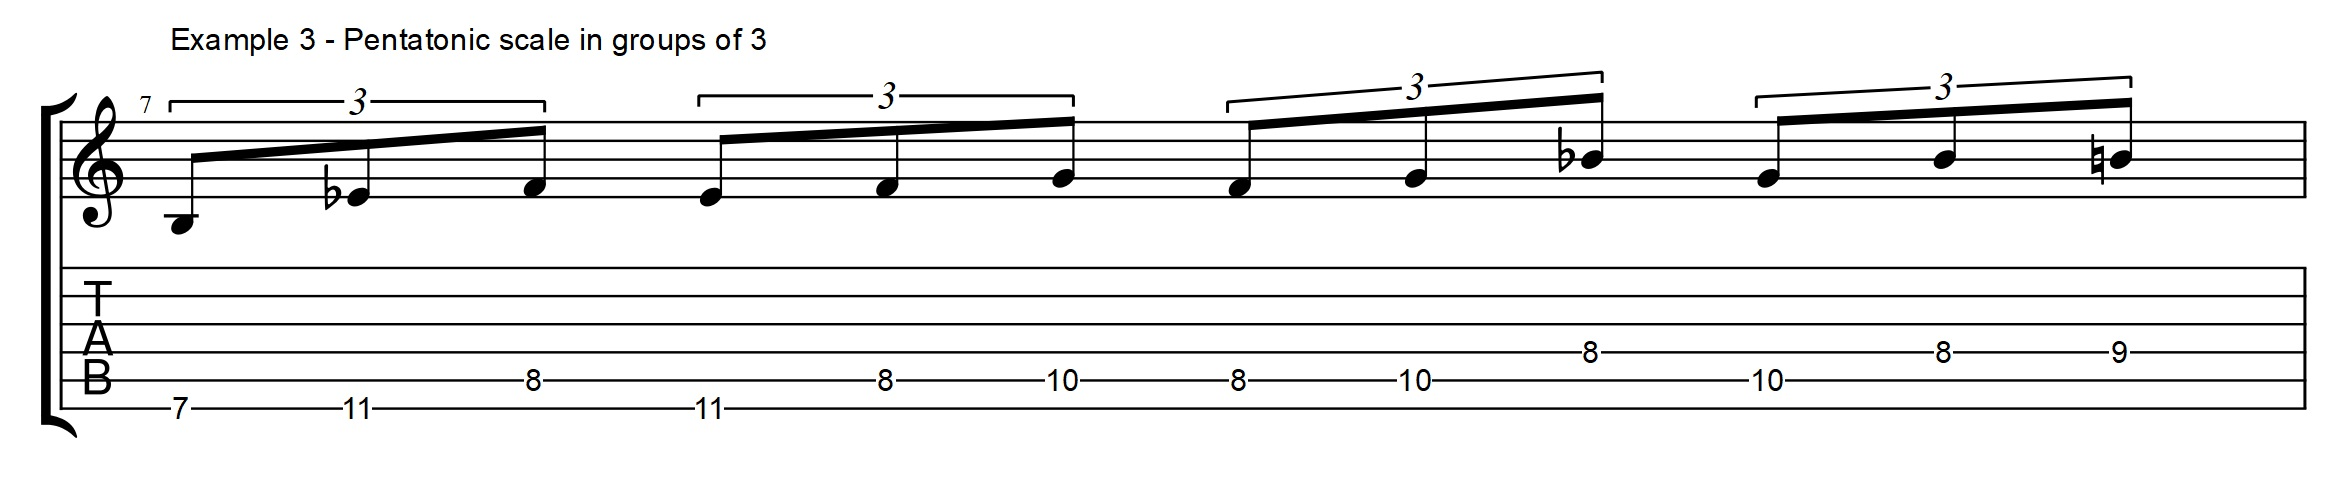 Pentatonic scale for altered chords modern melodic minor secrets the pentatonic scale in groups of 3 notes hexwebz Choice Image